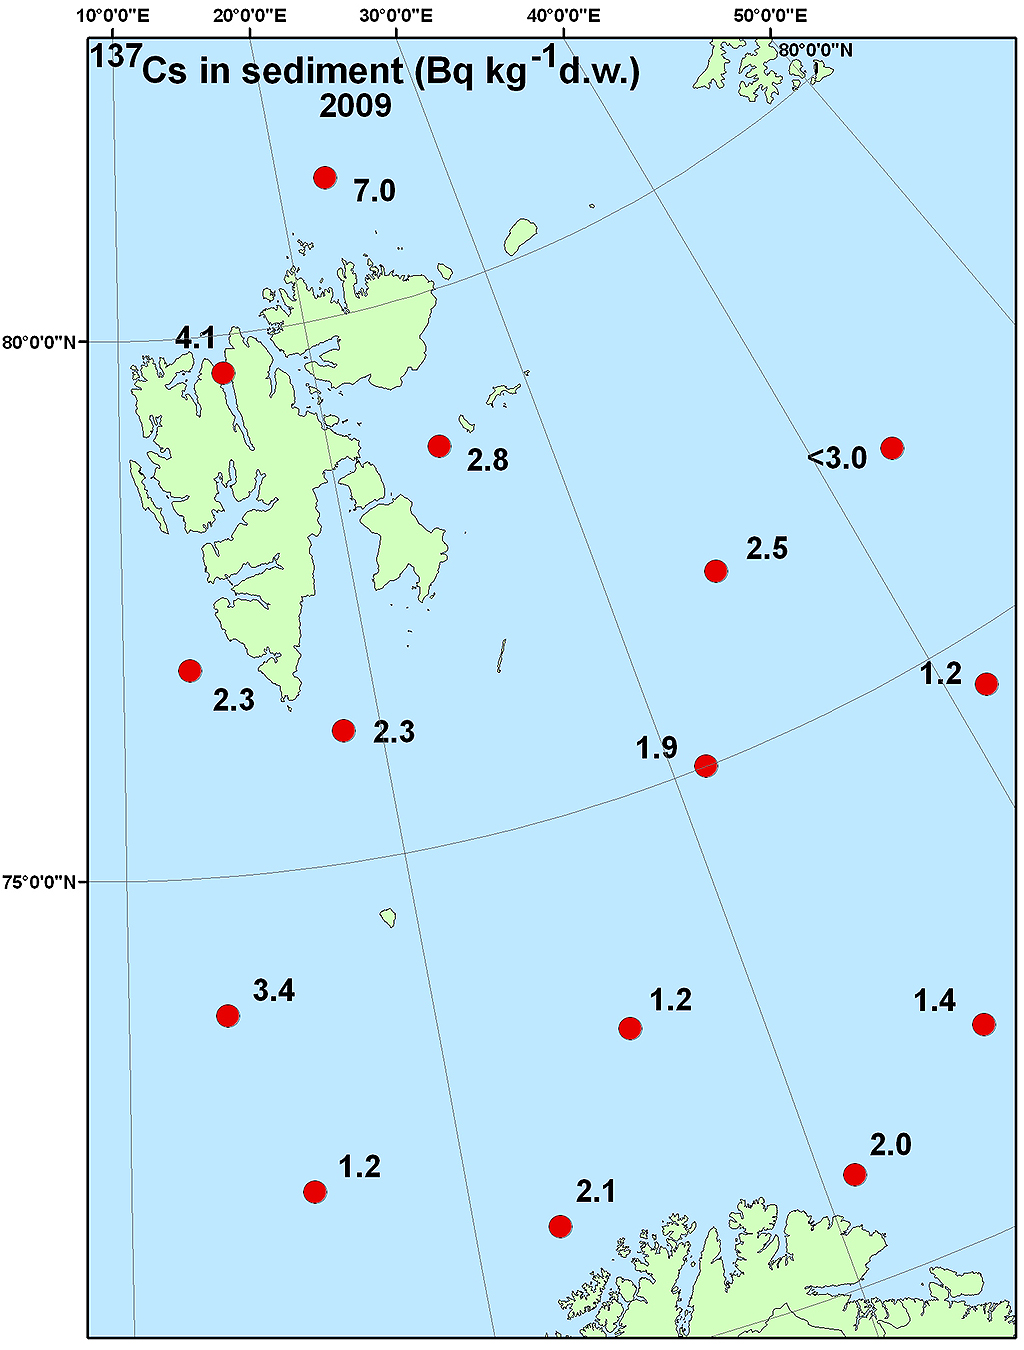 Figure 4.4.2.5a Activity concentration (Bq m-3) of 137Cs in surface water samples collected in the Barents Sea in 2009 (NRPA, 2011).